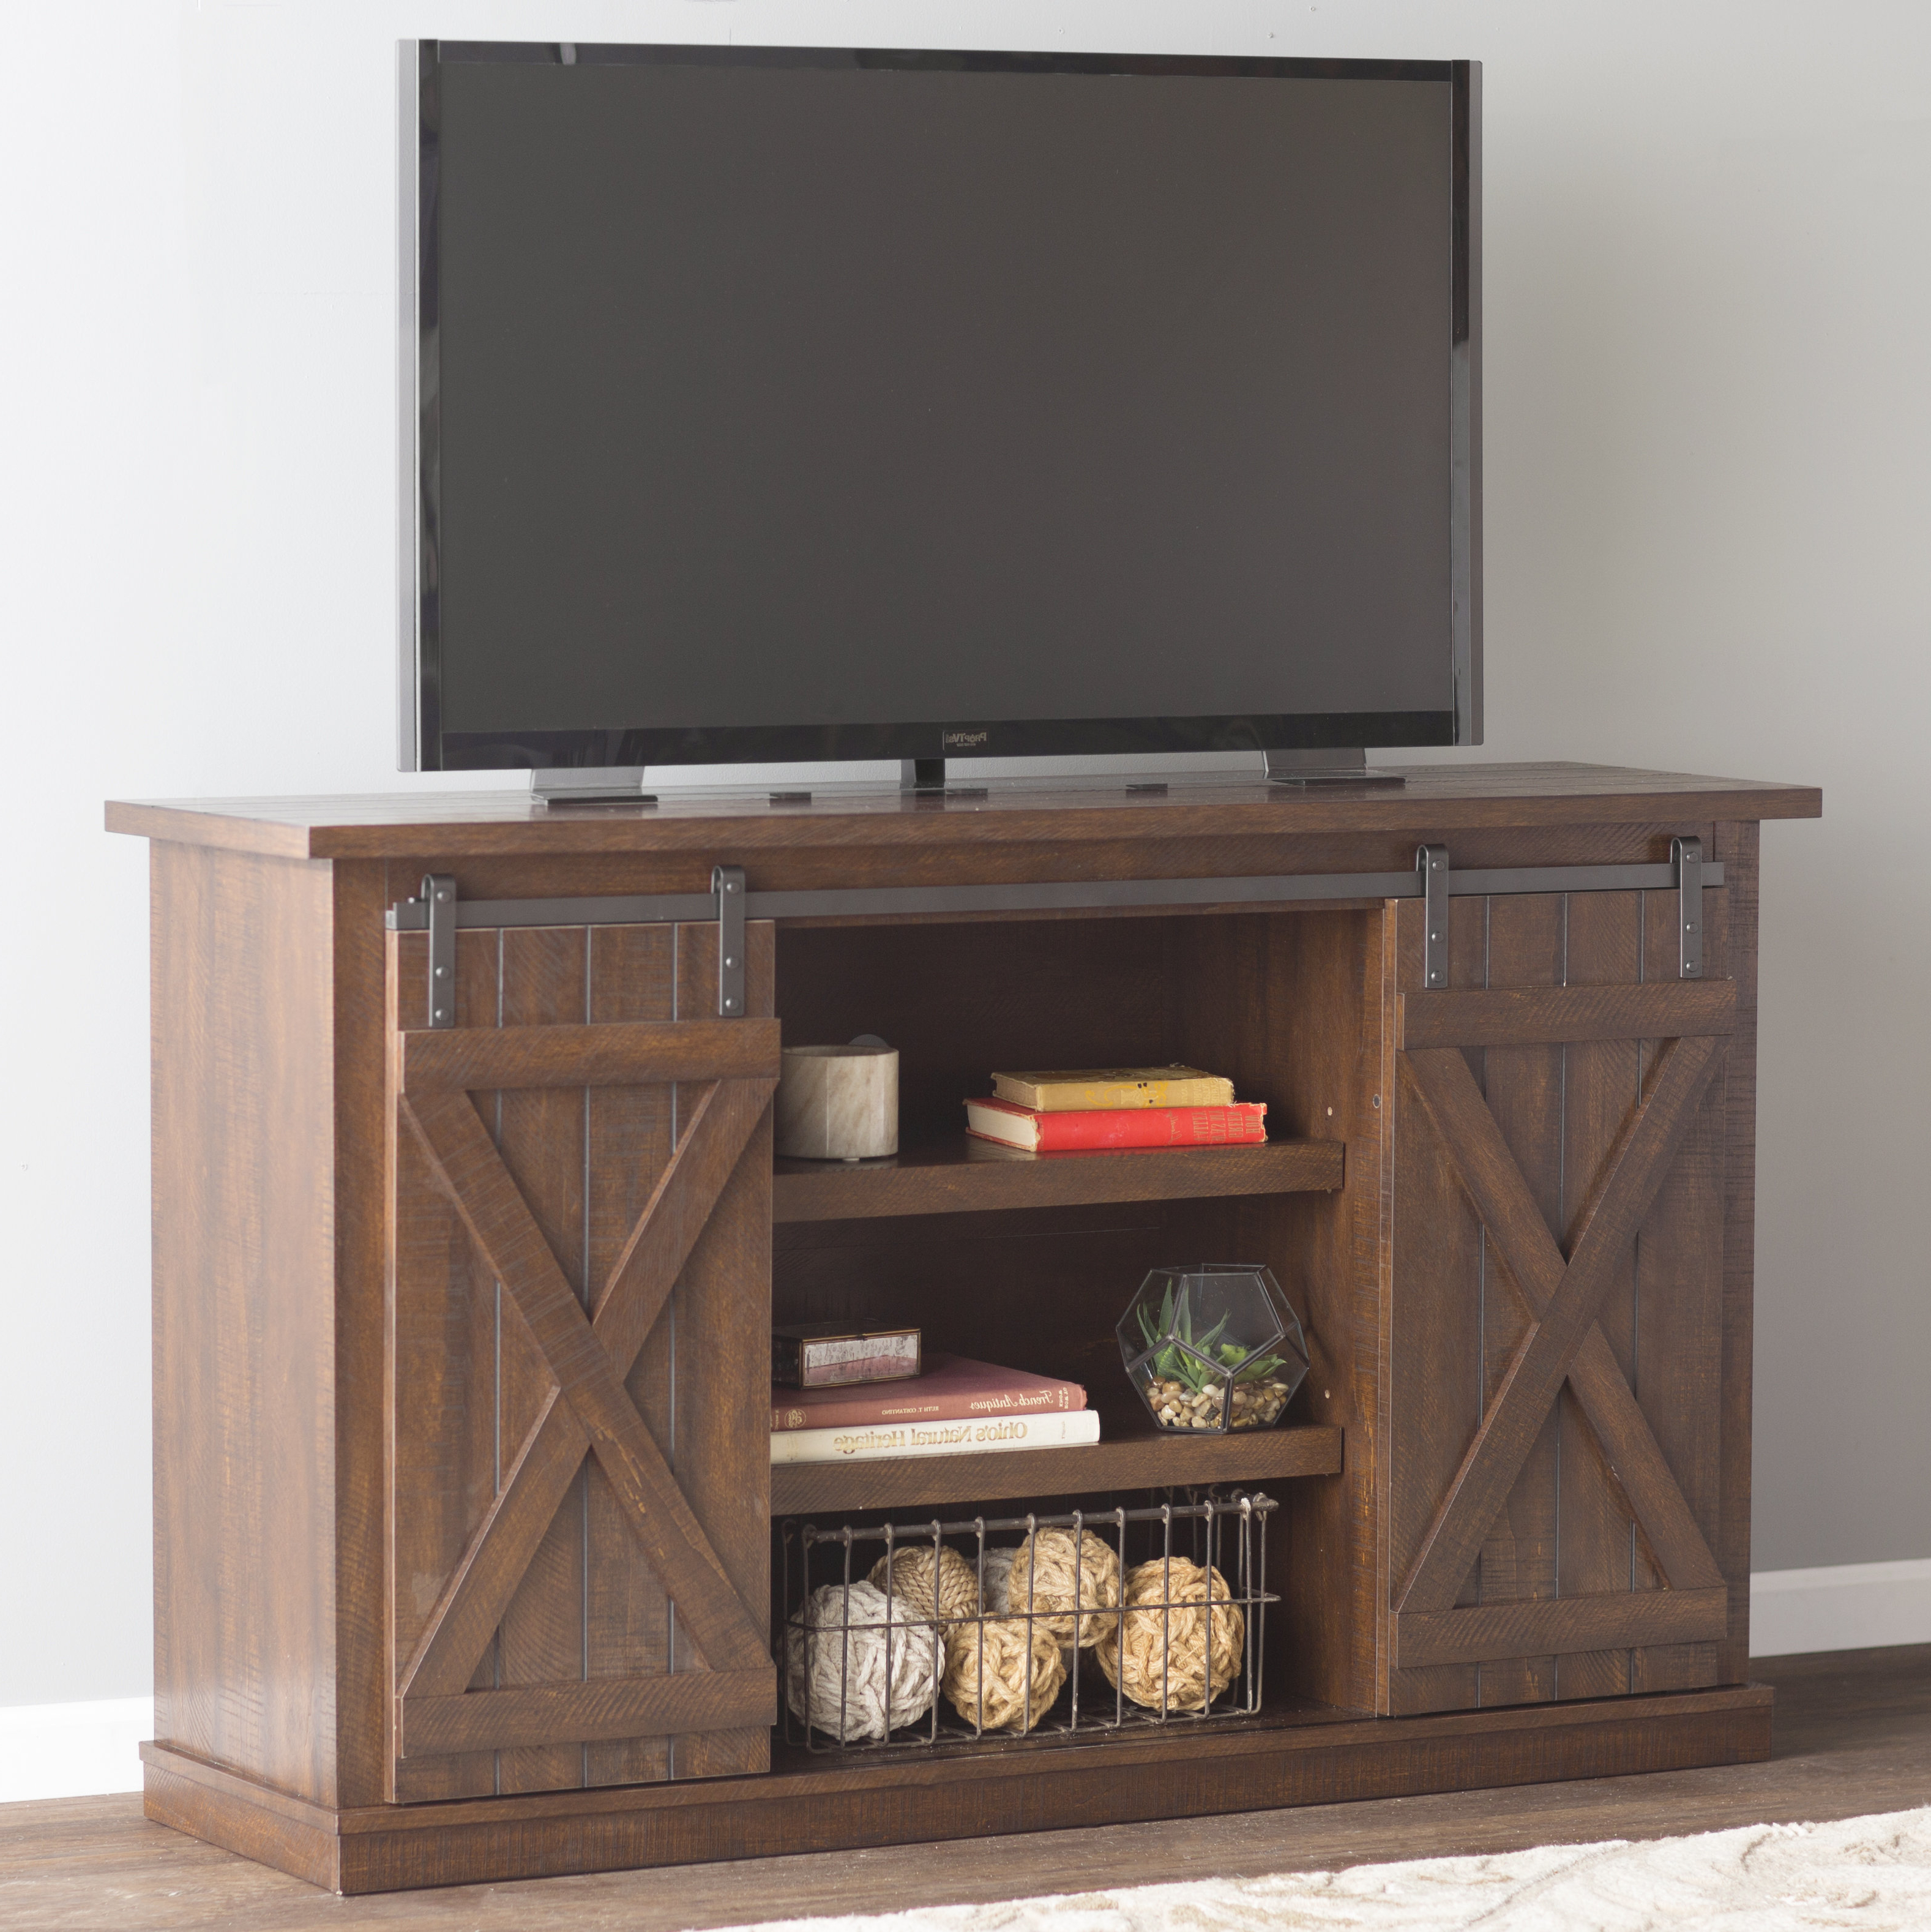 Wayfair For Current Tv Stands And Cabinets (View 19 of 20)